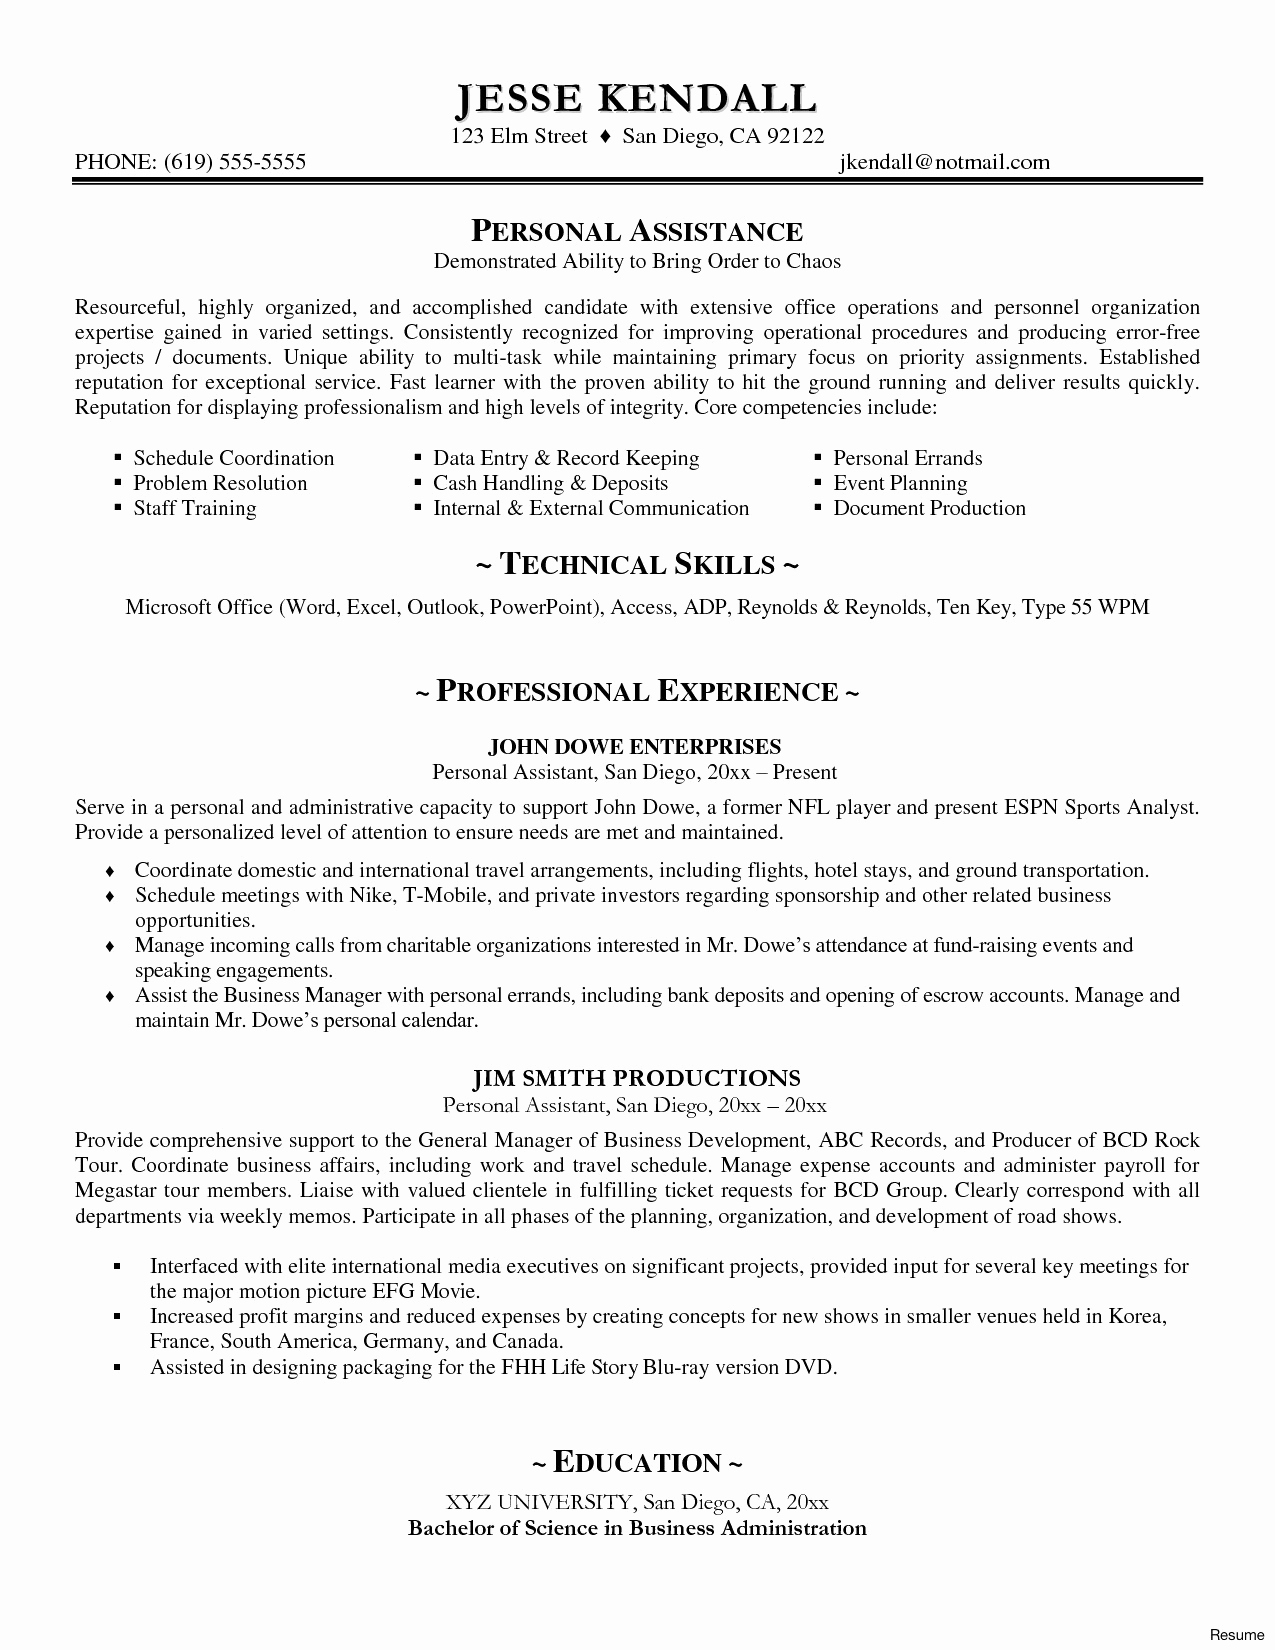 Resume Cover Letter Template Download - Free Cover Letter Template Download Awesome Free Microsoft Resume